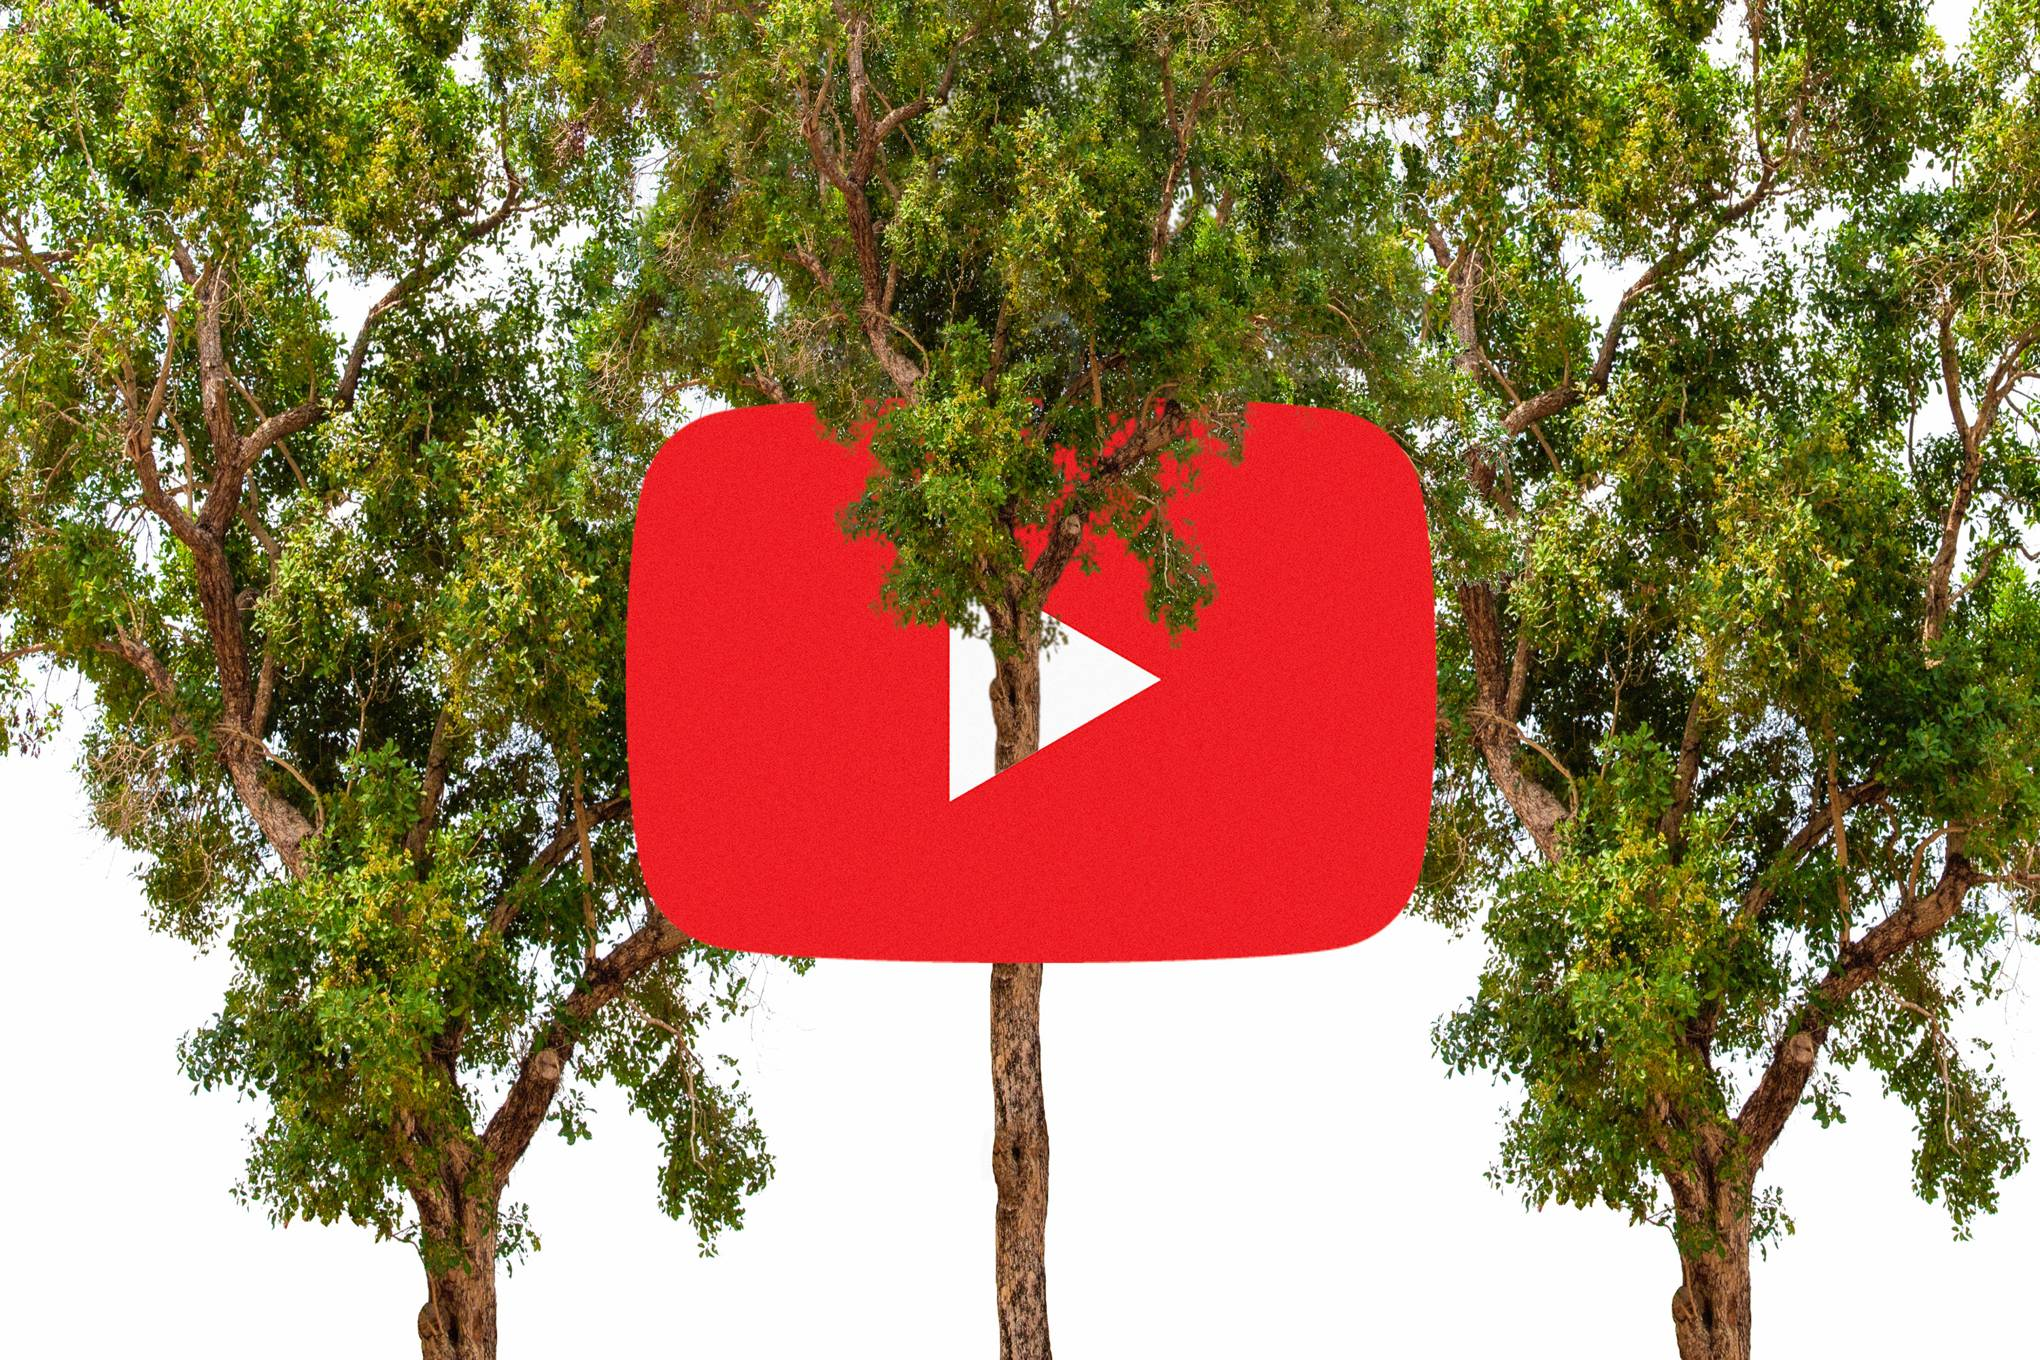 YouTubers (and Elon Musk) want to plant millions of trees. Will it help fight climate change?